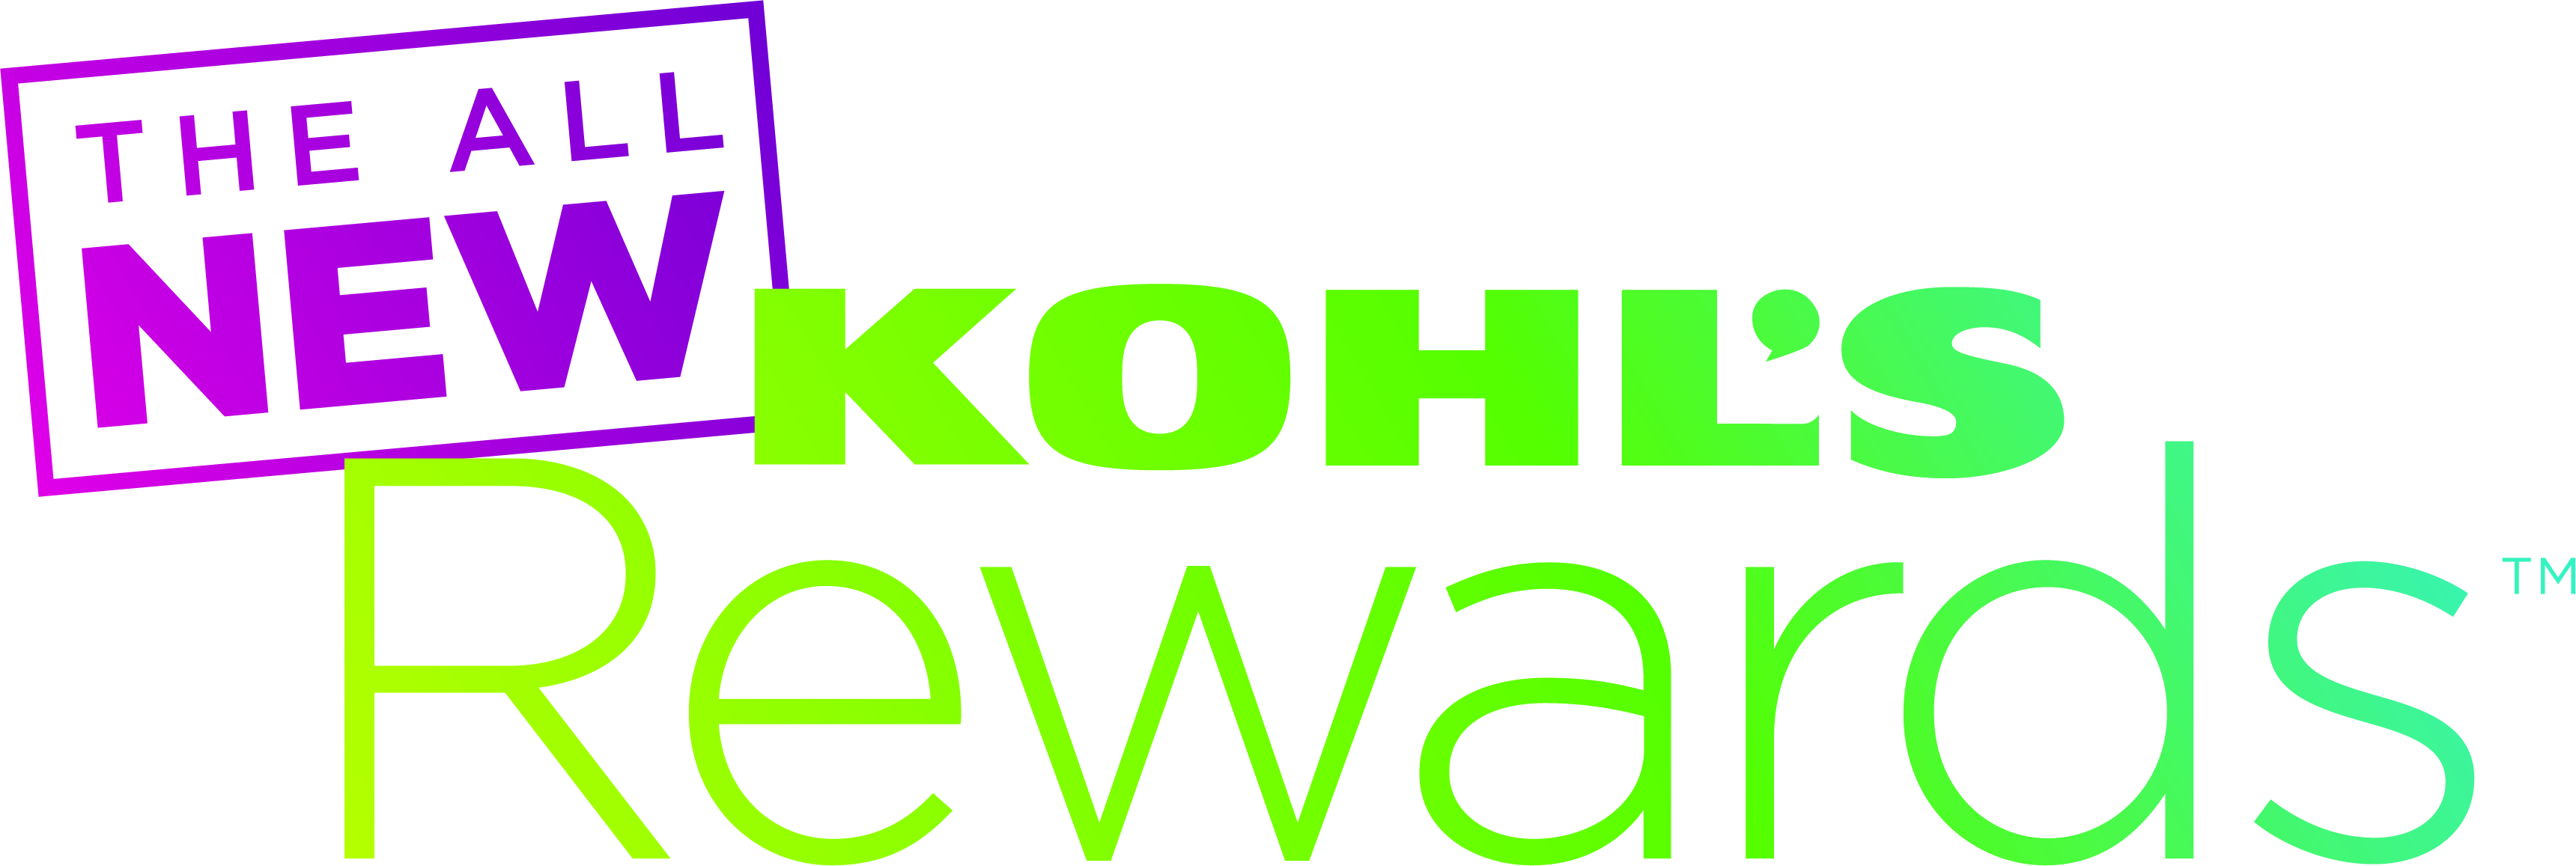 all new kohl's rewards perks include early access to black friday sales